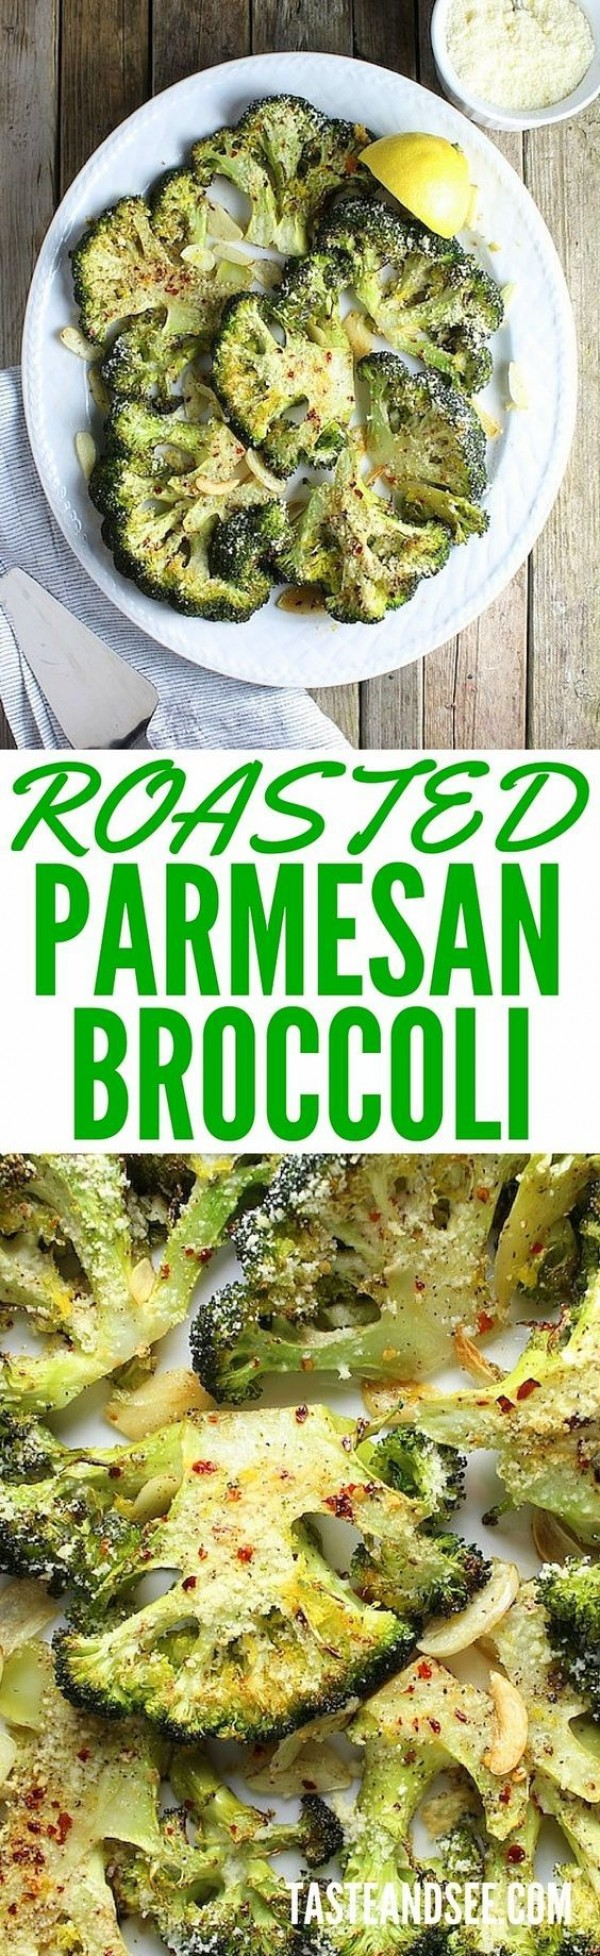 Get the recipe Roasted Parmesan Broccoli @recipes_to_go